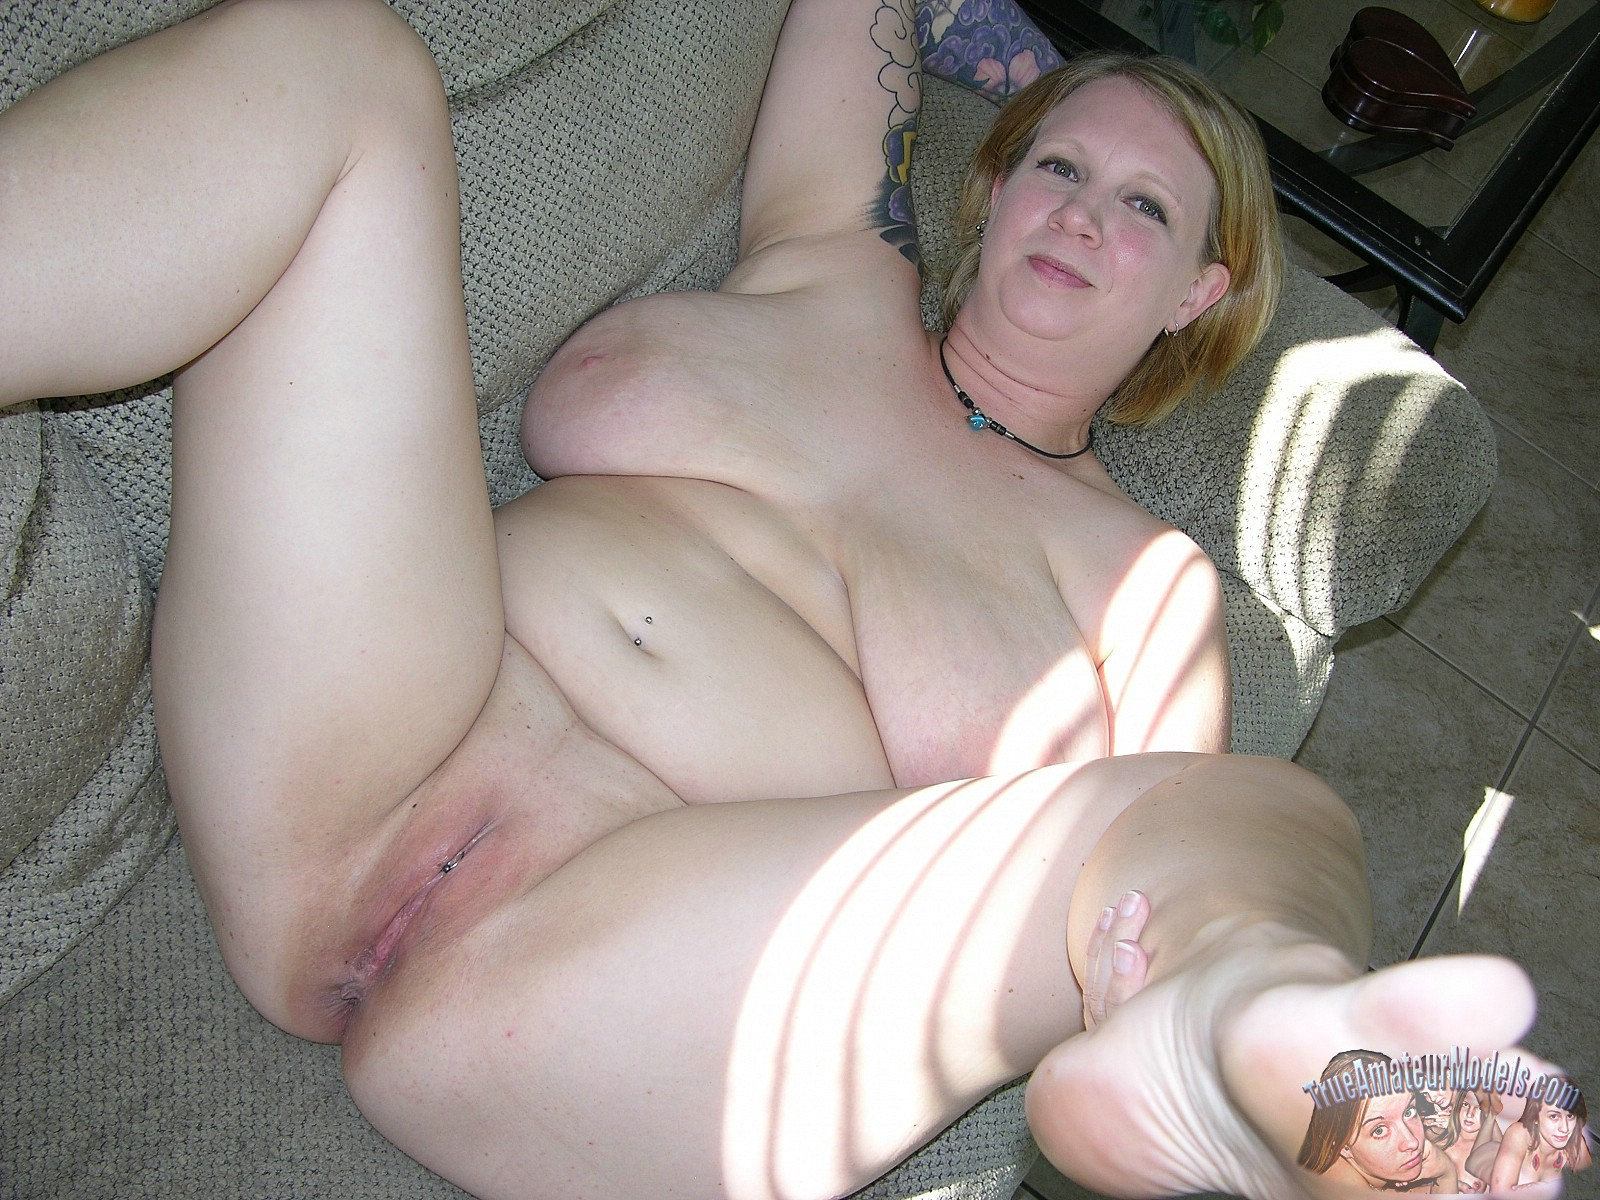 Seems me, Chubby amateur mature big tits have